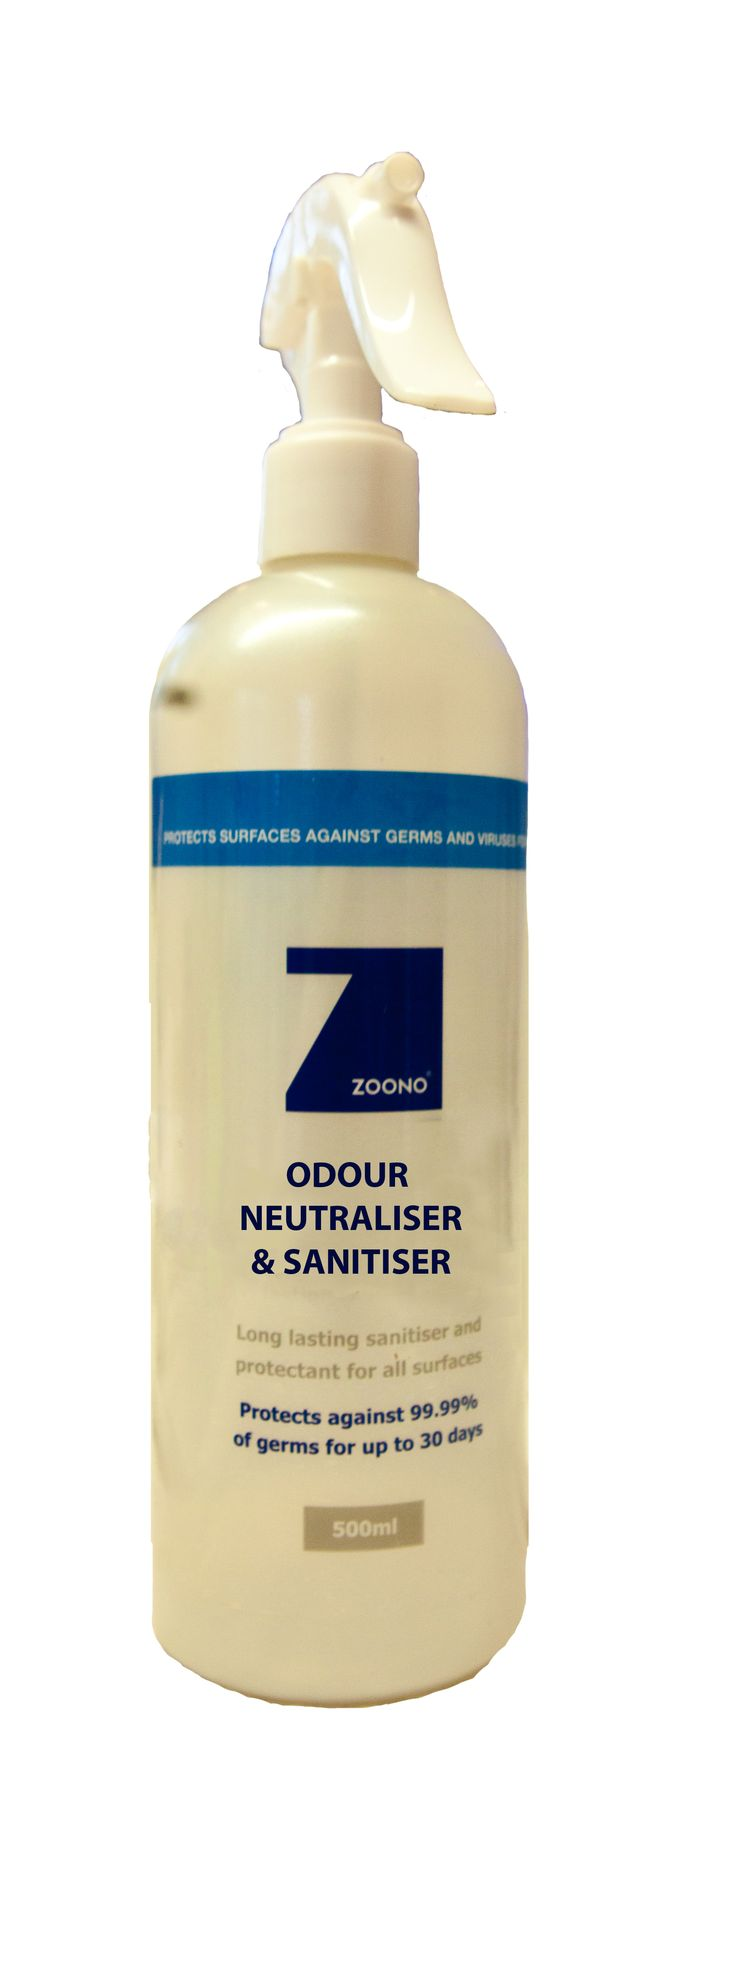 Zoono Odour Neutraliser & Sanitiser quickly eliminates unwanted odours from rooms, shoes and textiles - all while sanitising!